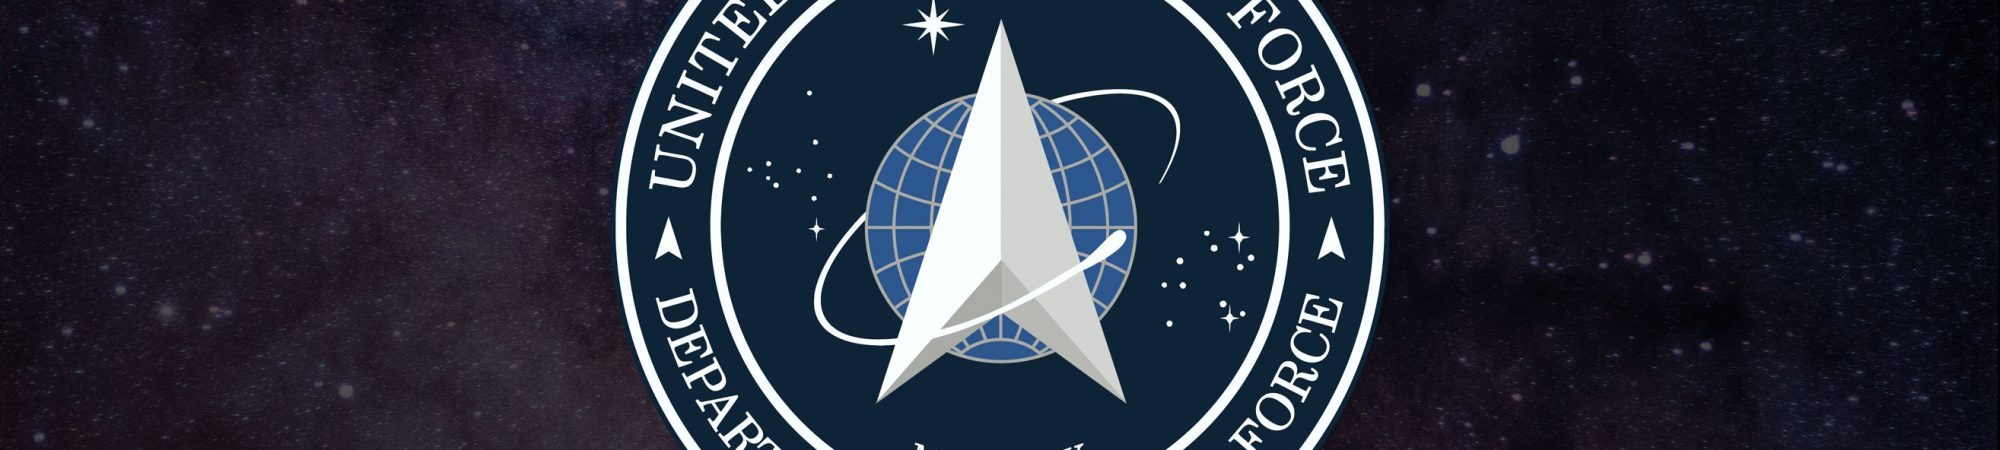 united-states-space-force-2000x450